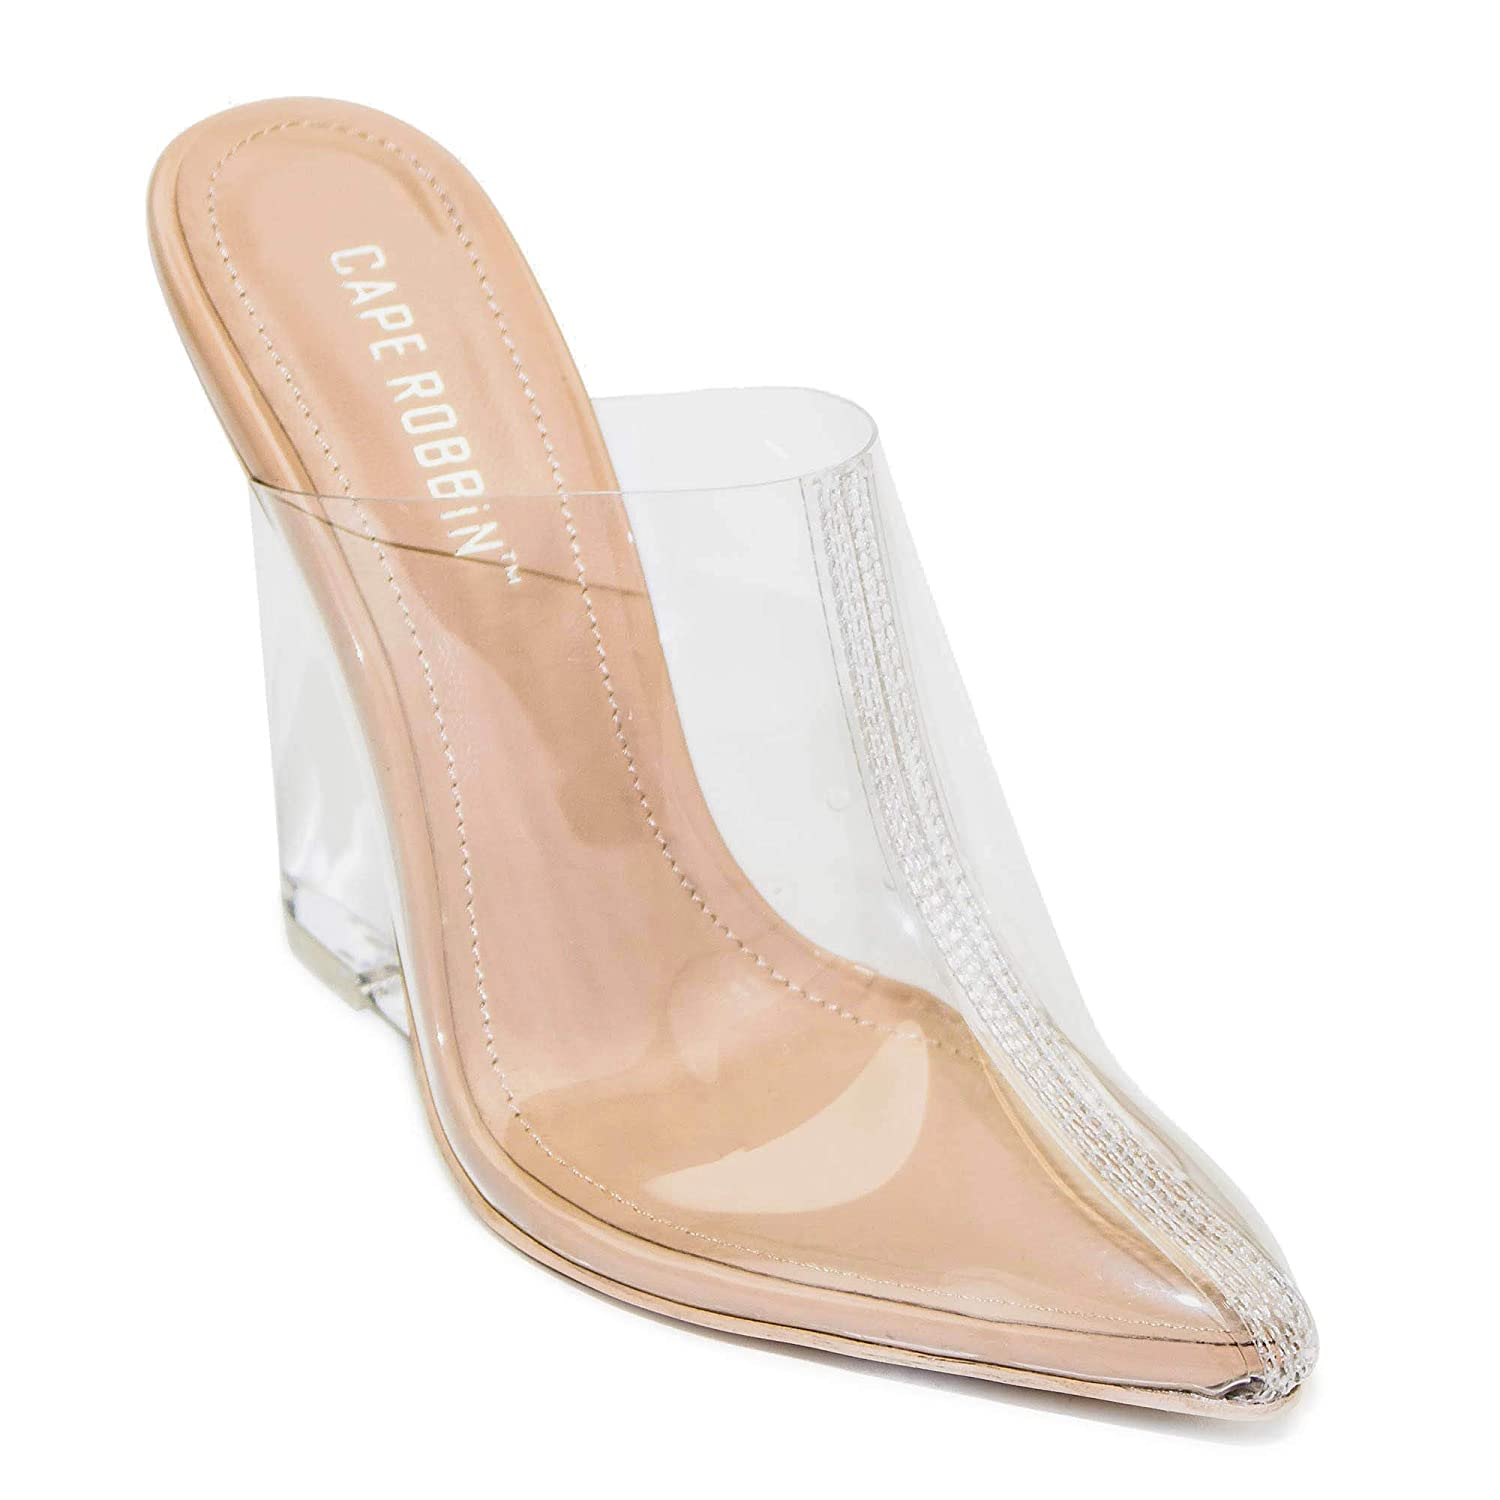 7b66814c27 Amazon.com | Cape Robbin Women's Sugar Transparent Lucite Clear Wedge Heel  PVC Closed Toe Slip On Mules | Mules & Clogs